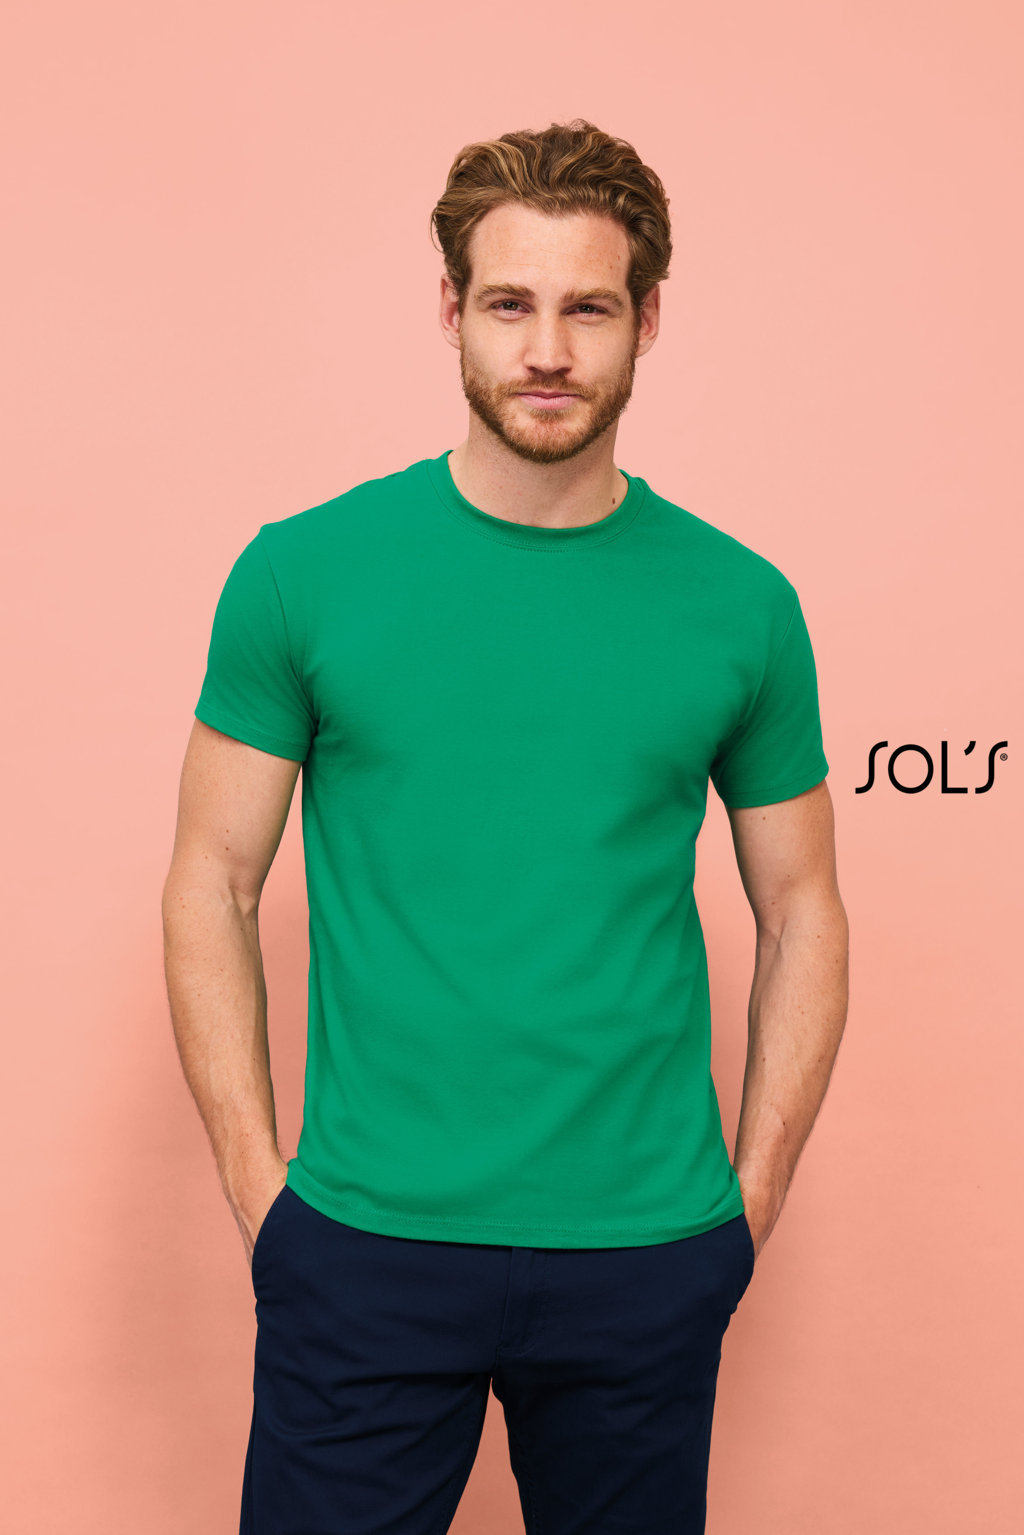 TEE SHIRT HOMME SOL'S QUALITE SUPERIEURE Imperial